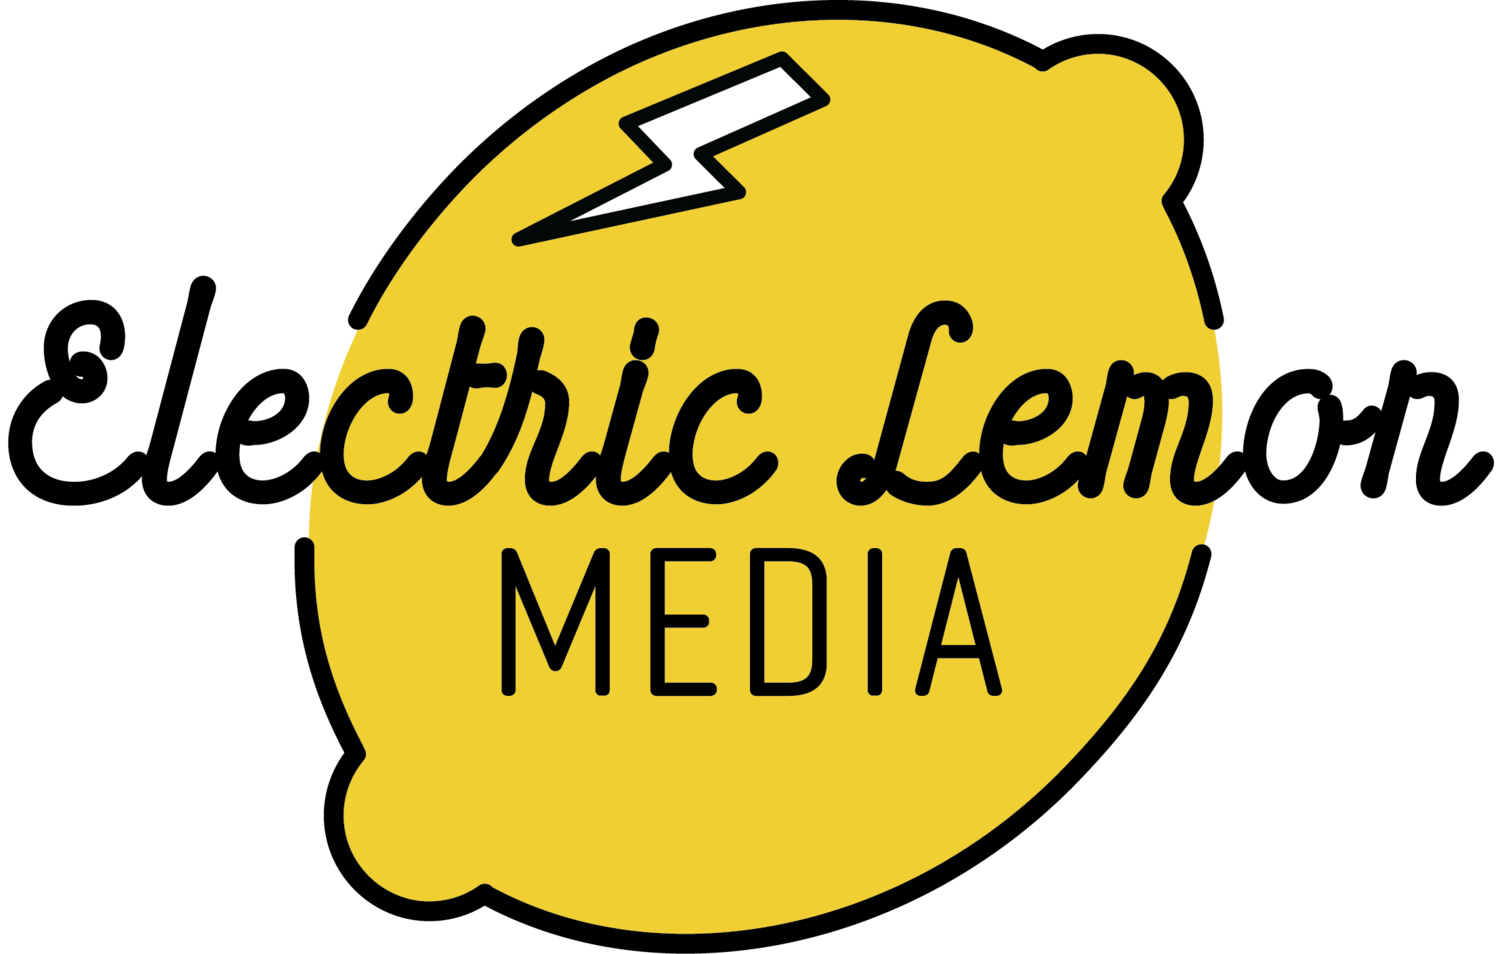 Electric Lemon Media